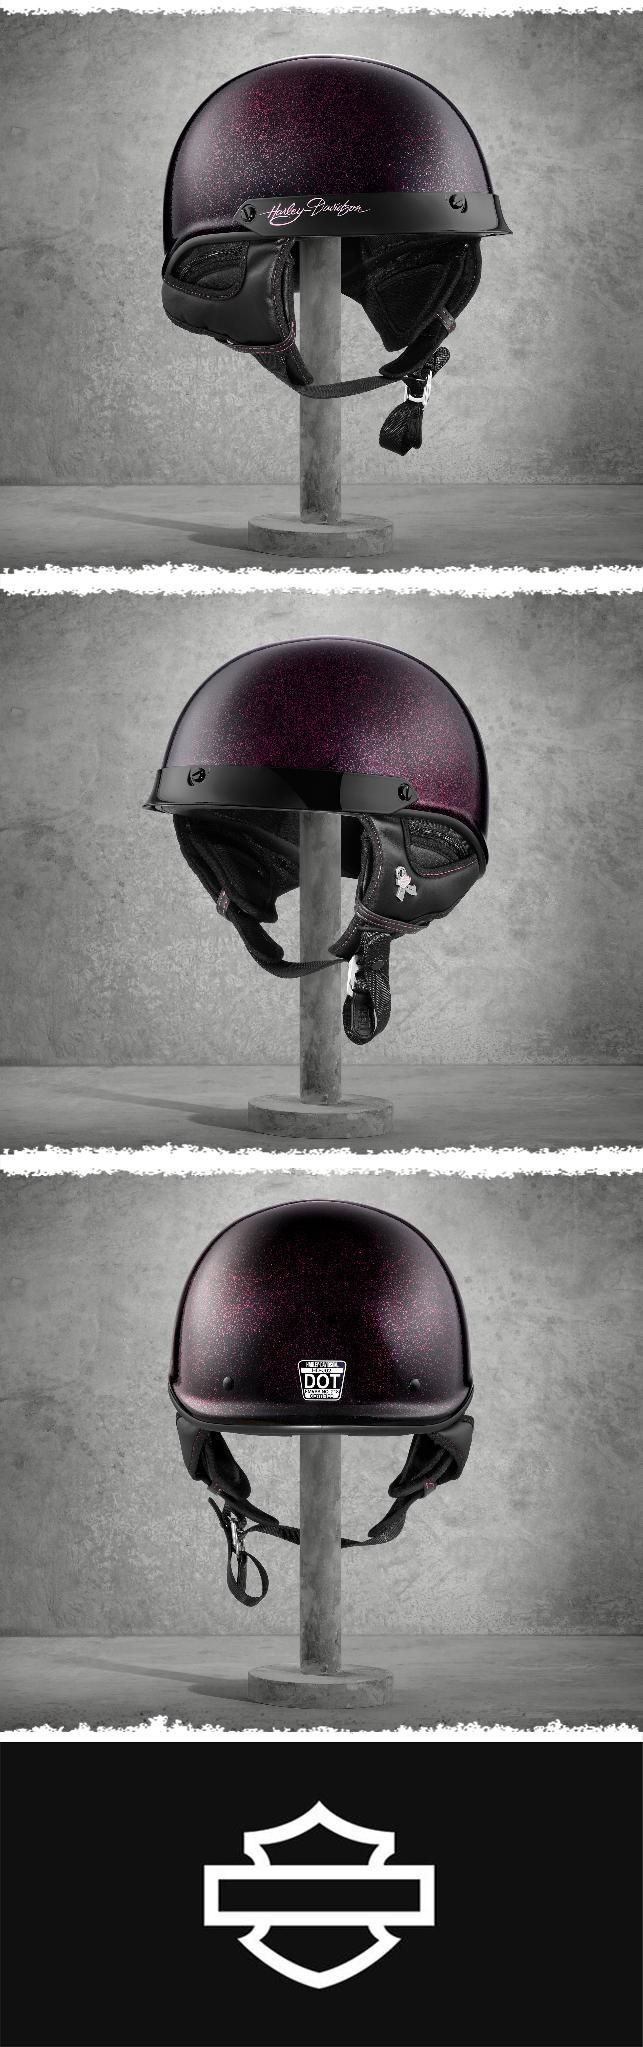 The Pink Label Collection wouldn't be complete without this ladies' helmet. | Harley-Davidson Women's Pink Label Ultra-Light J02 Half Helmet